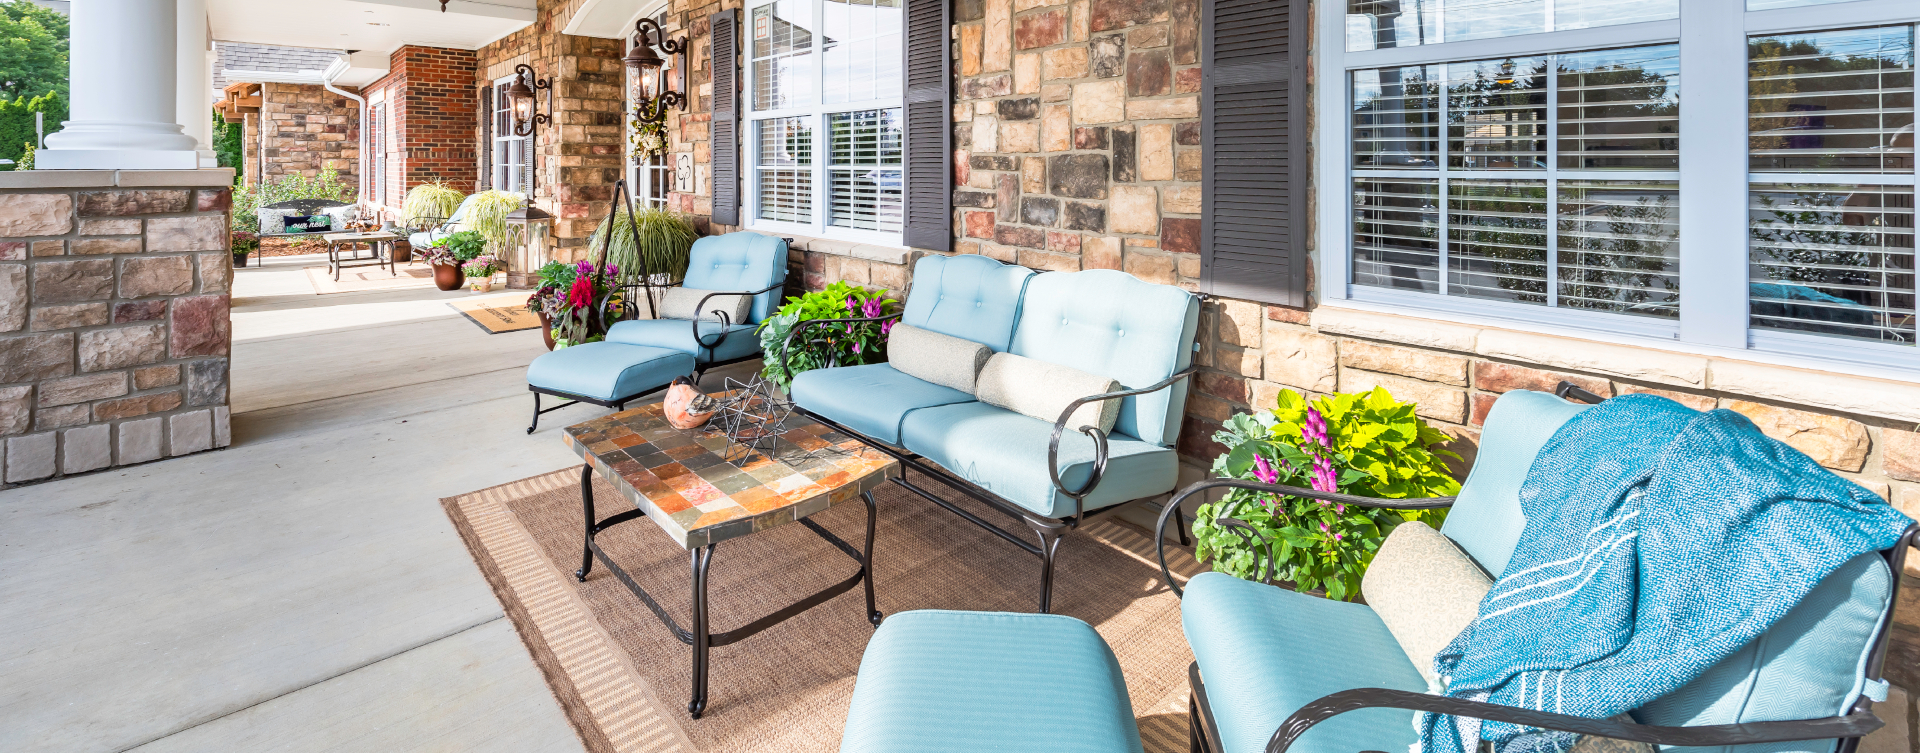 Relax in your favorite chair on the porch at Bickford of Shelby Township